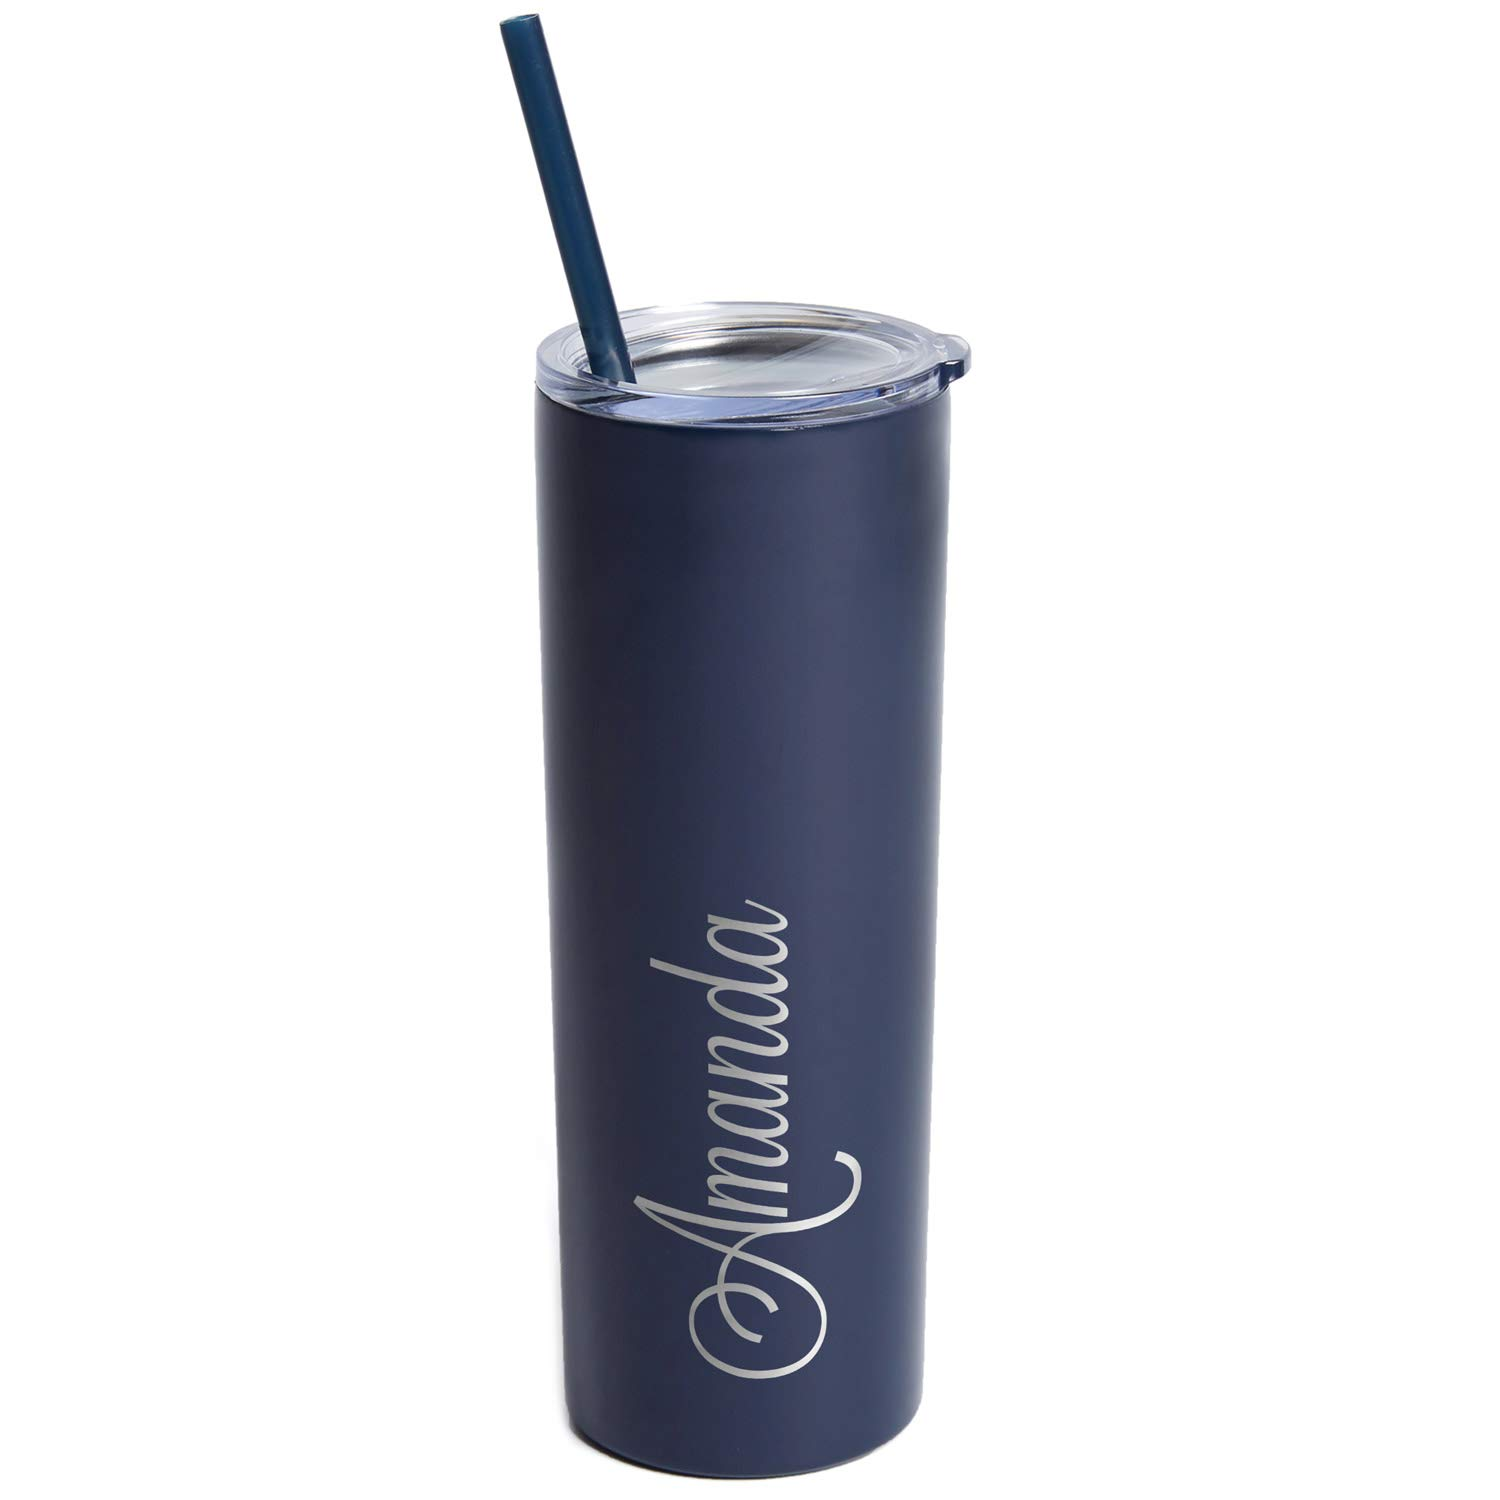 Engraved Personalized Tumbler with Straw 20 oz - Stainless Steel Vacuum Insulated Skinny Tumbler Engraved with Name (Navy)